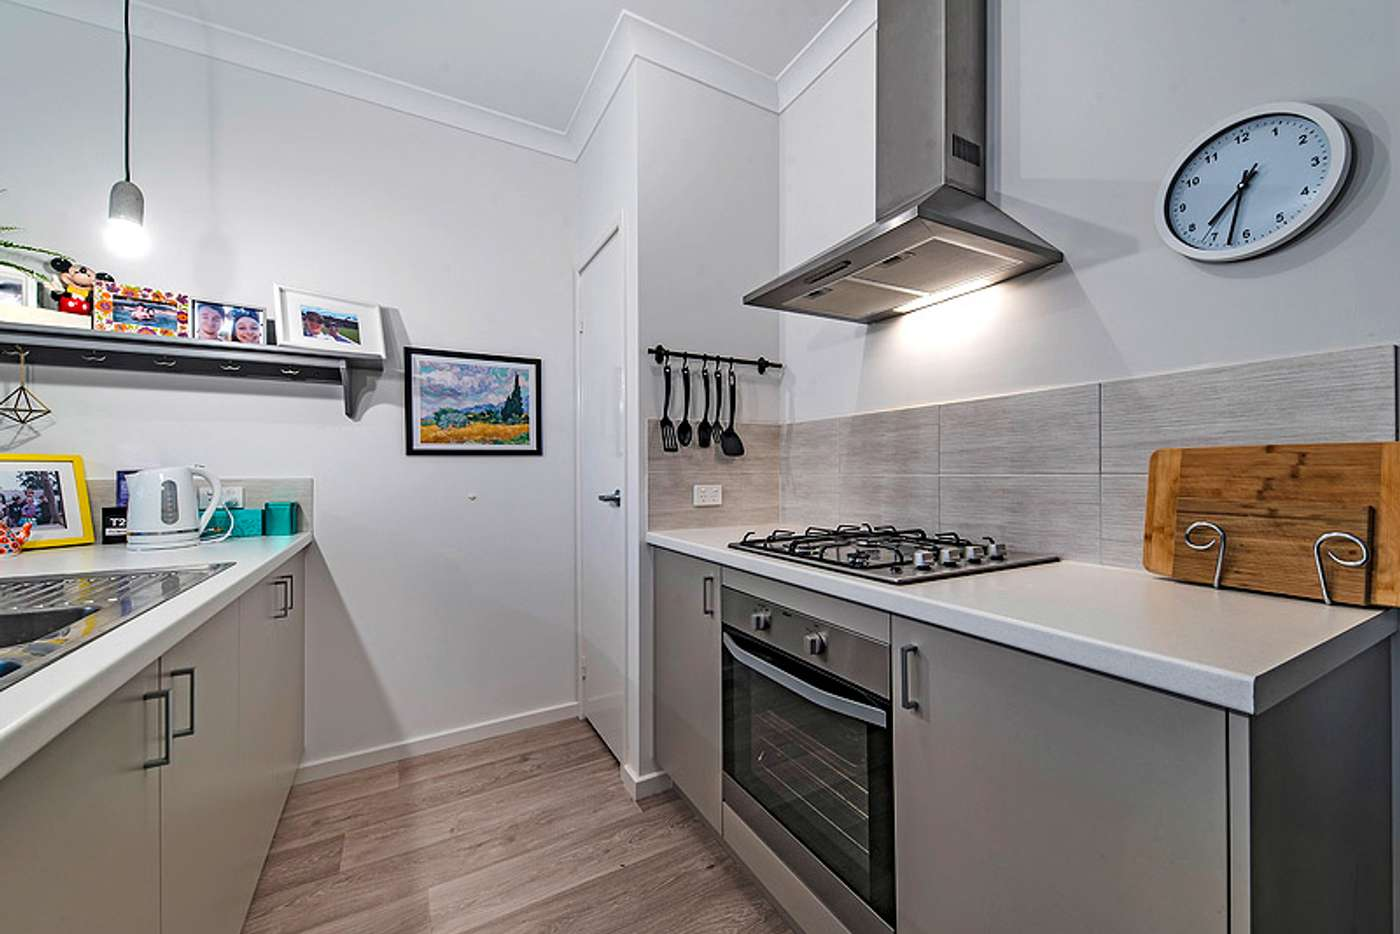 Seventh view of Homely house listing, 8 Darbyshire Parade, Alkimos WA 6038